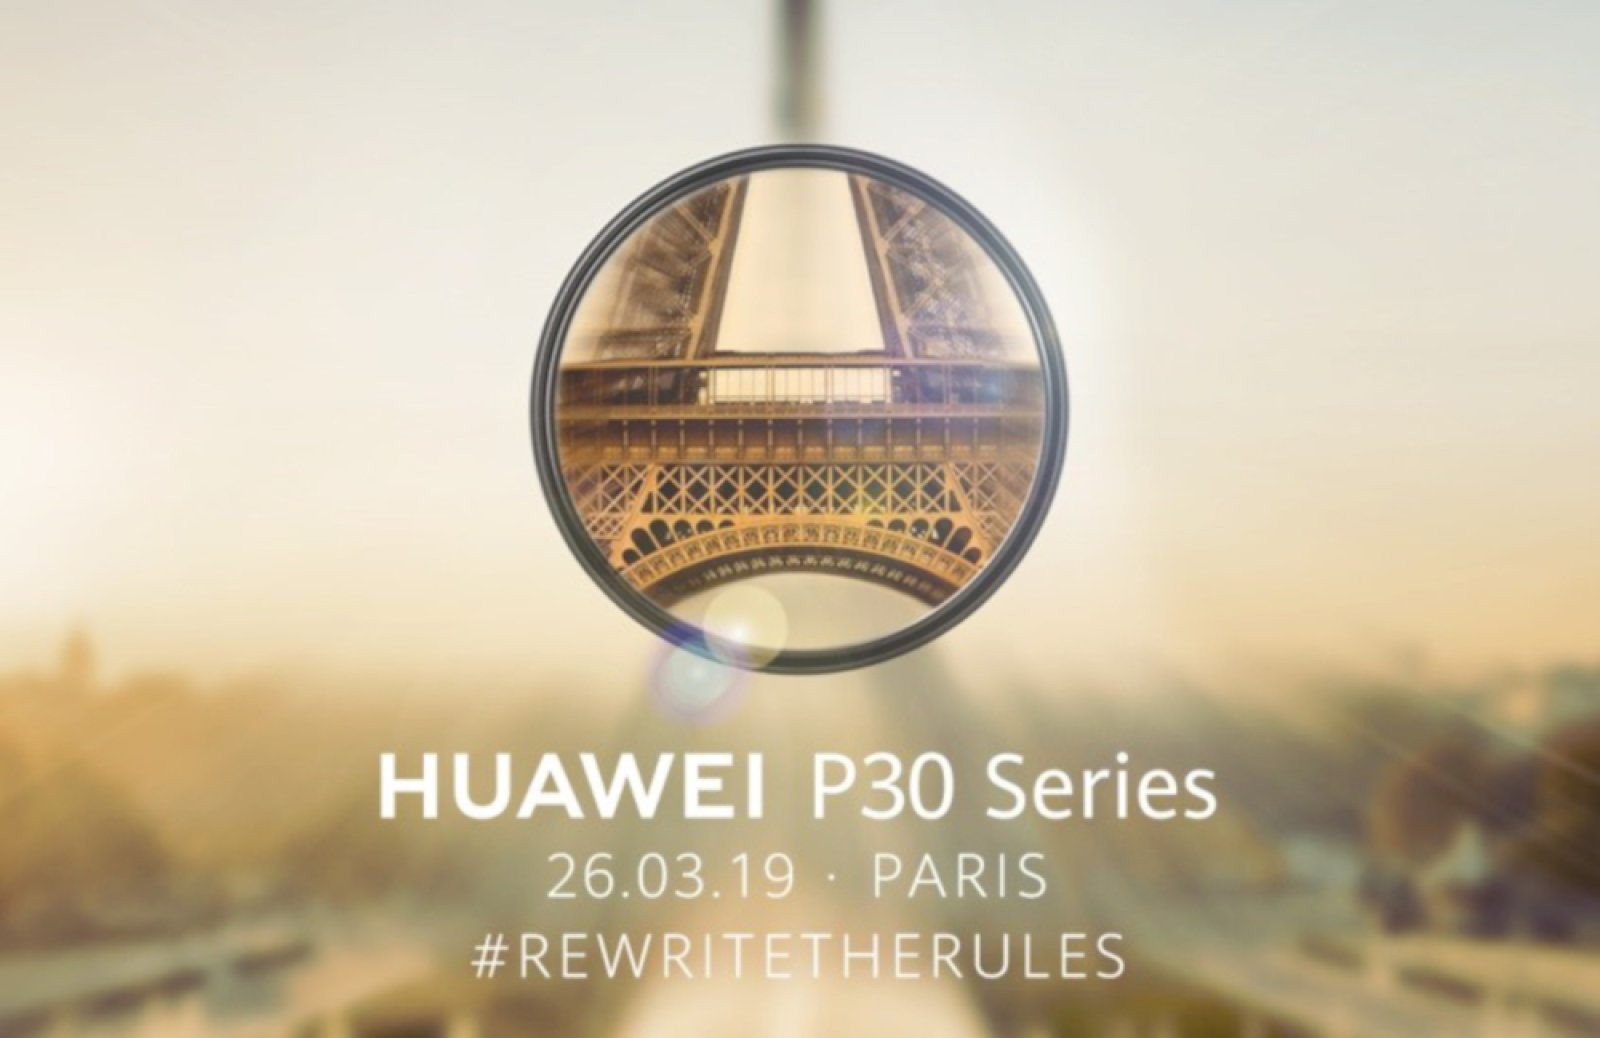 Huawei P30 launch event